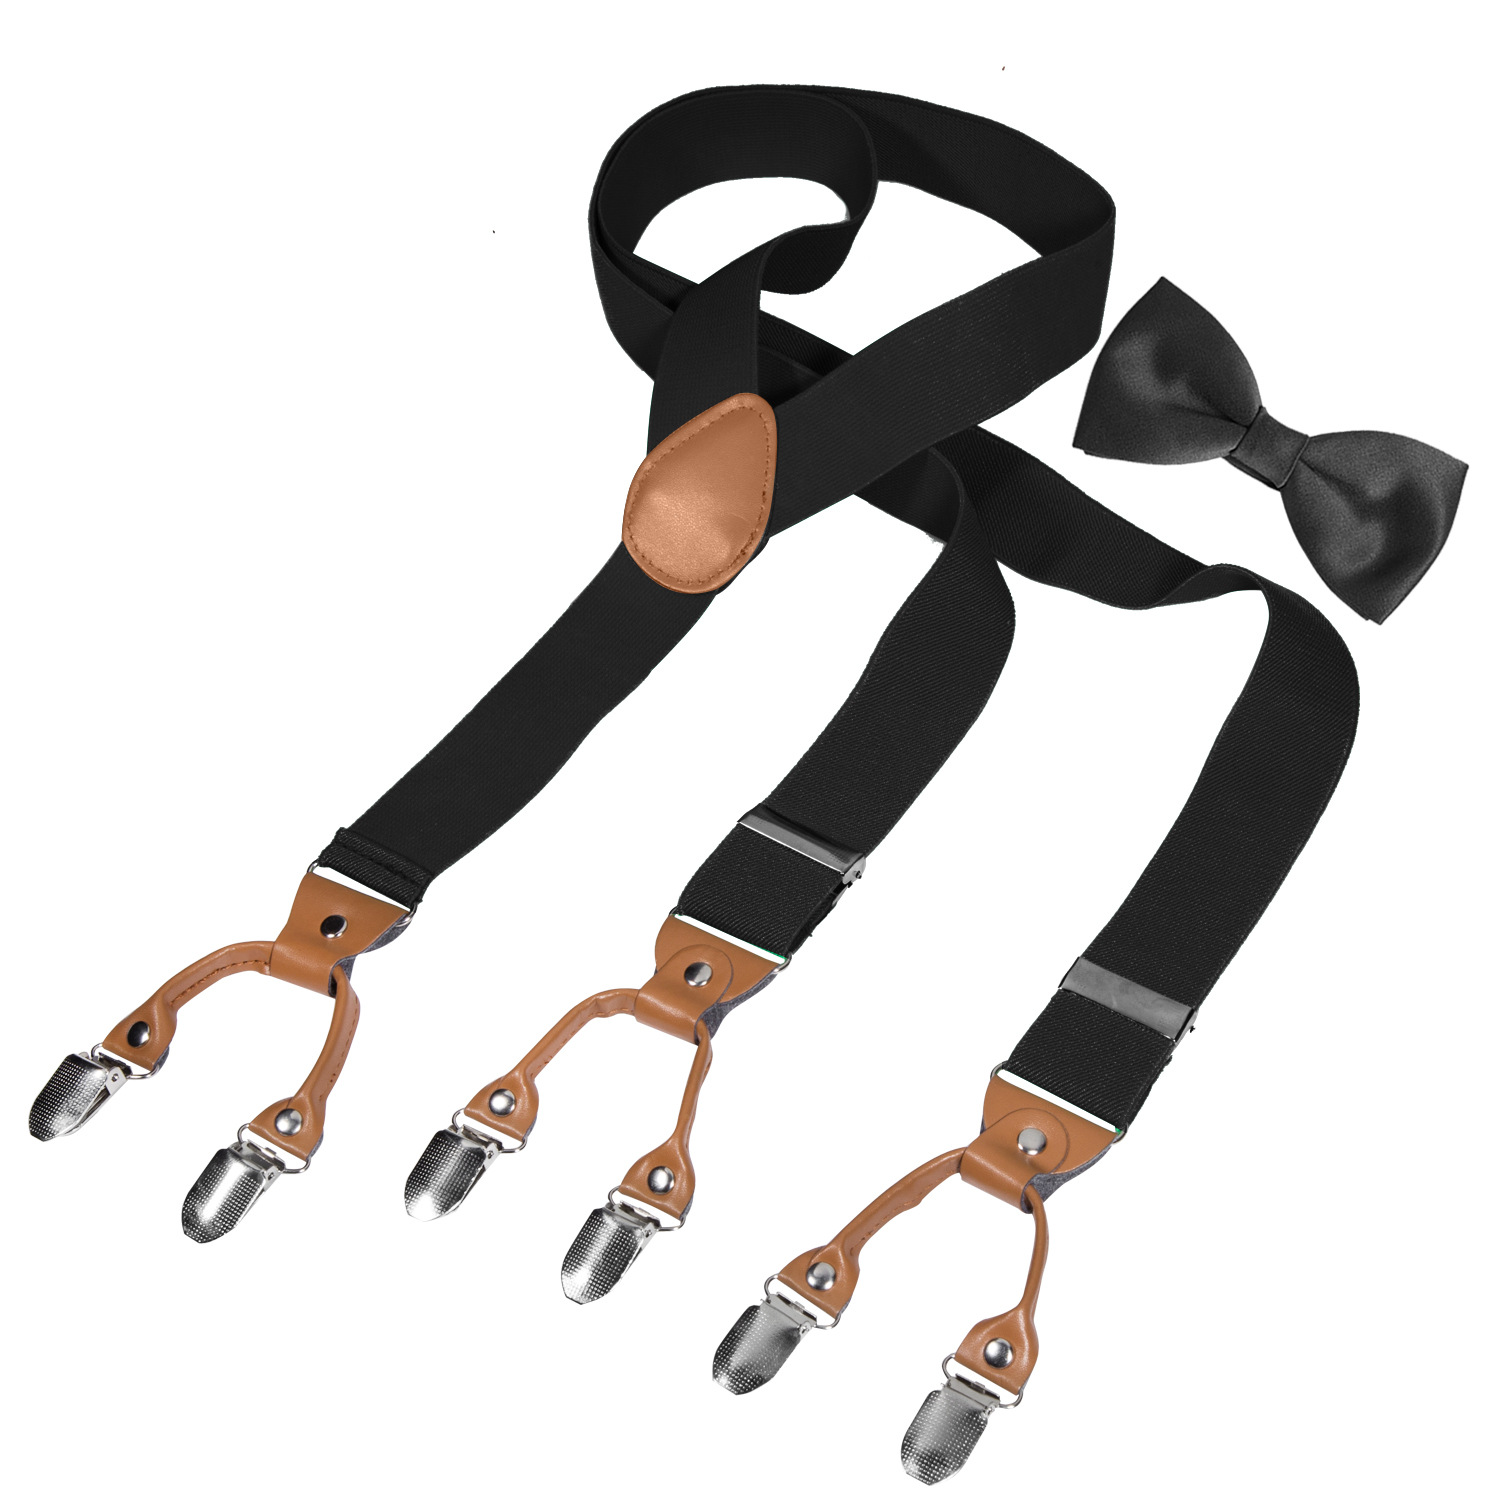 Cross Border Supply Of Goods For Both Men And Women 2 Clip Suspender Strap Work Casual Adult Monochrome Suspenders